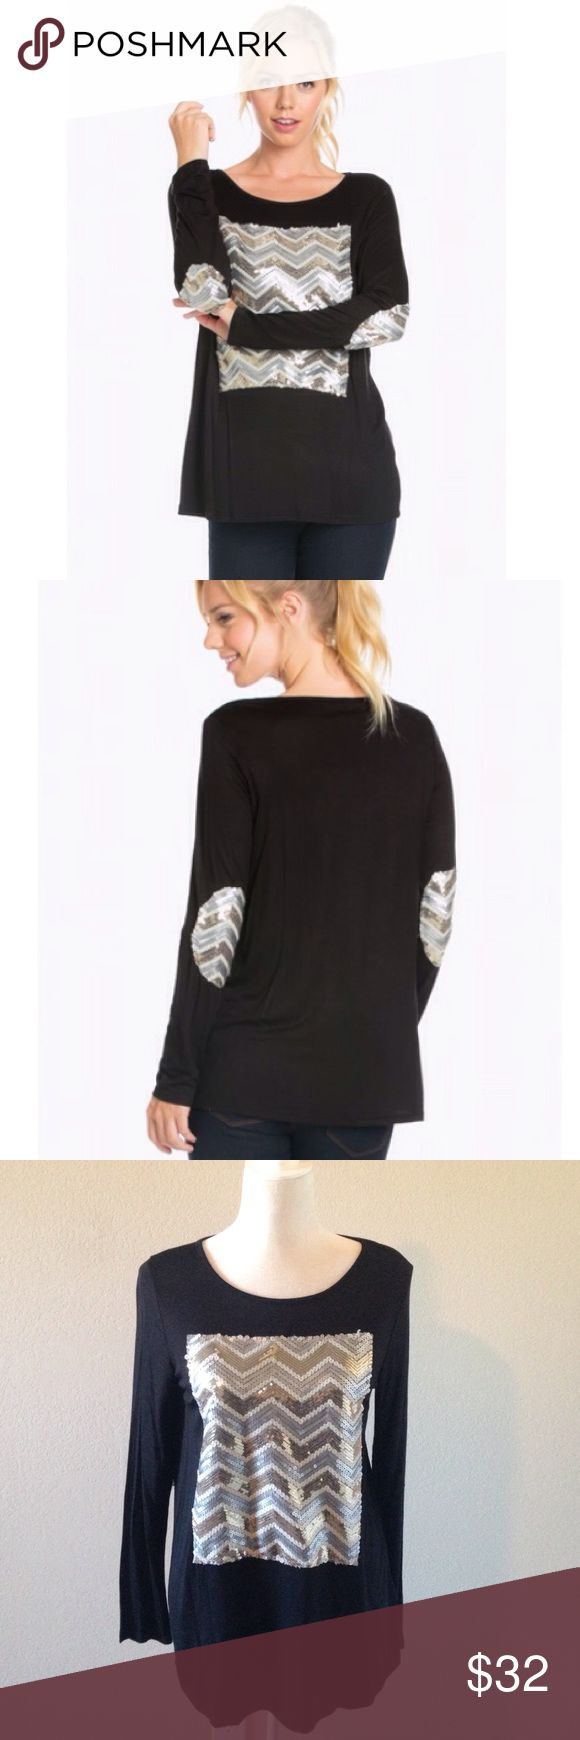 """Chevron sequin top Black long sleeve with multi color sequin patch on the front and the elbows. Perfect for fall  rayon and spandex material. Made in USA. Measurements. Small Bust 18"""" Length 26 1/2"""". Medium Bust 19"""" Length 27 1/2"""" Large Bust 20"""" Length 28 1/2"""" These beauties are New without tags as they come straight from the wholesaler. Tops Blouses"""